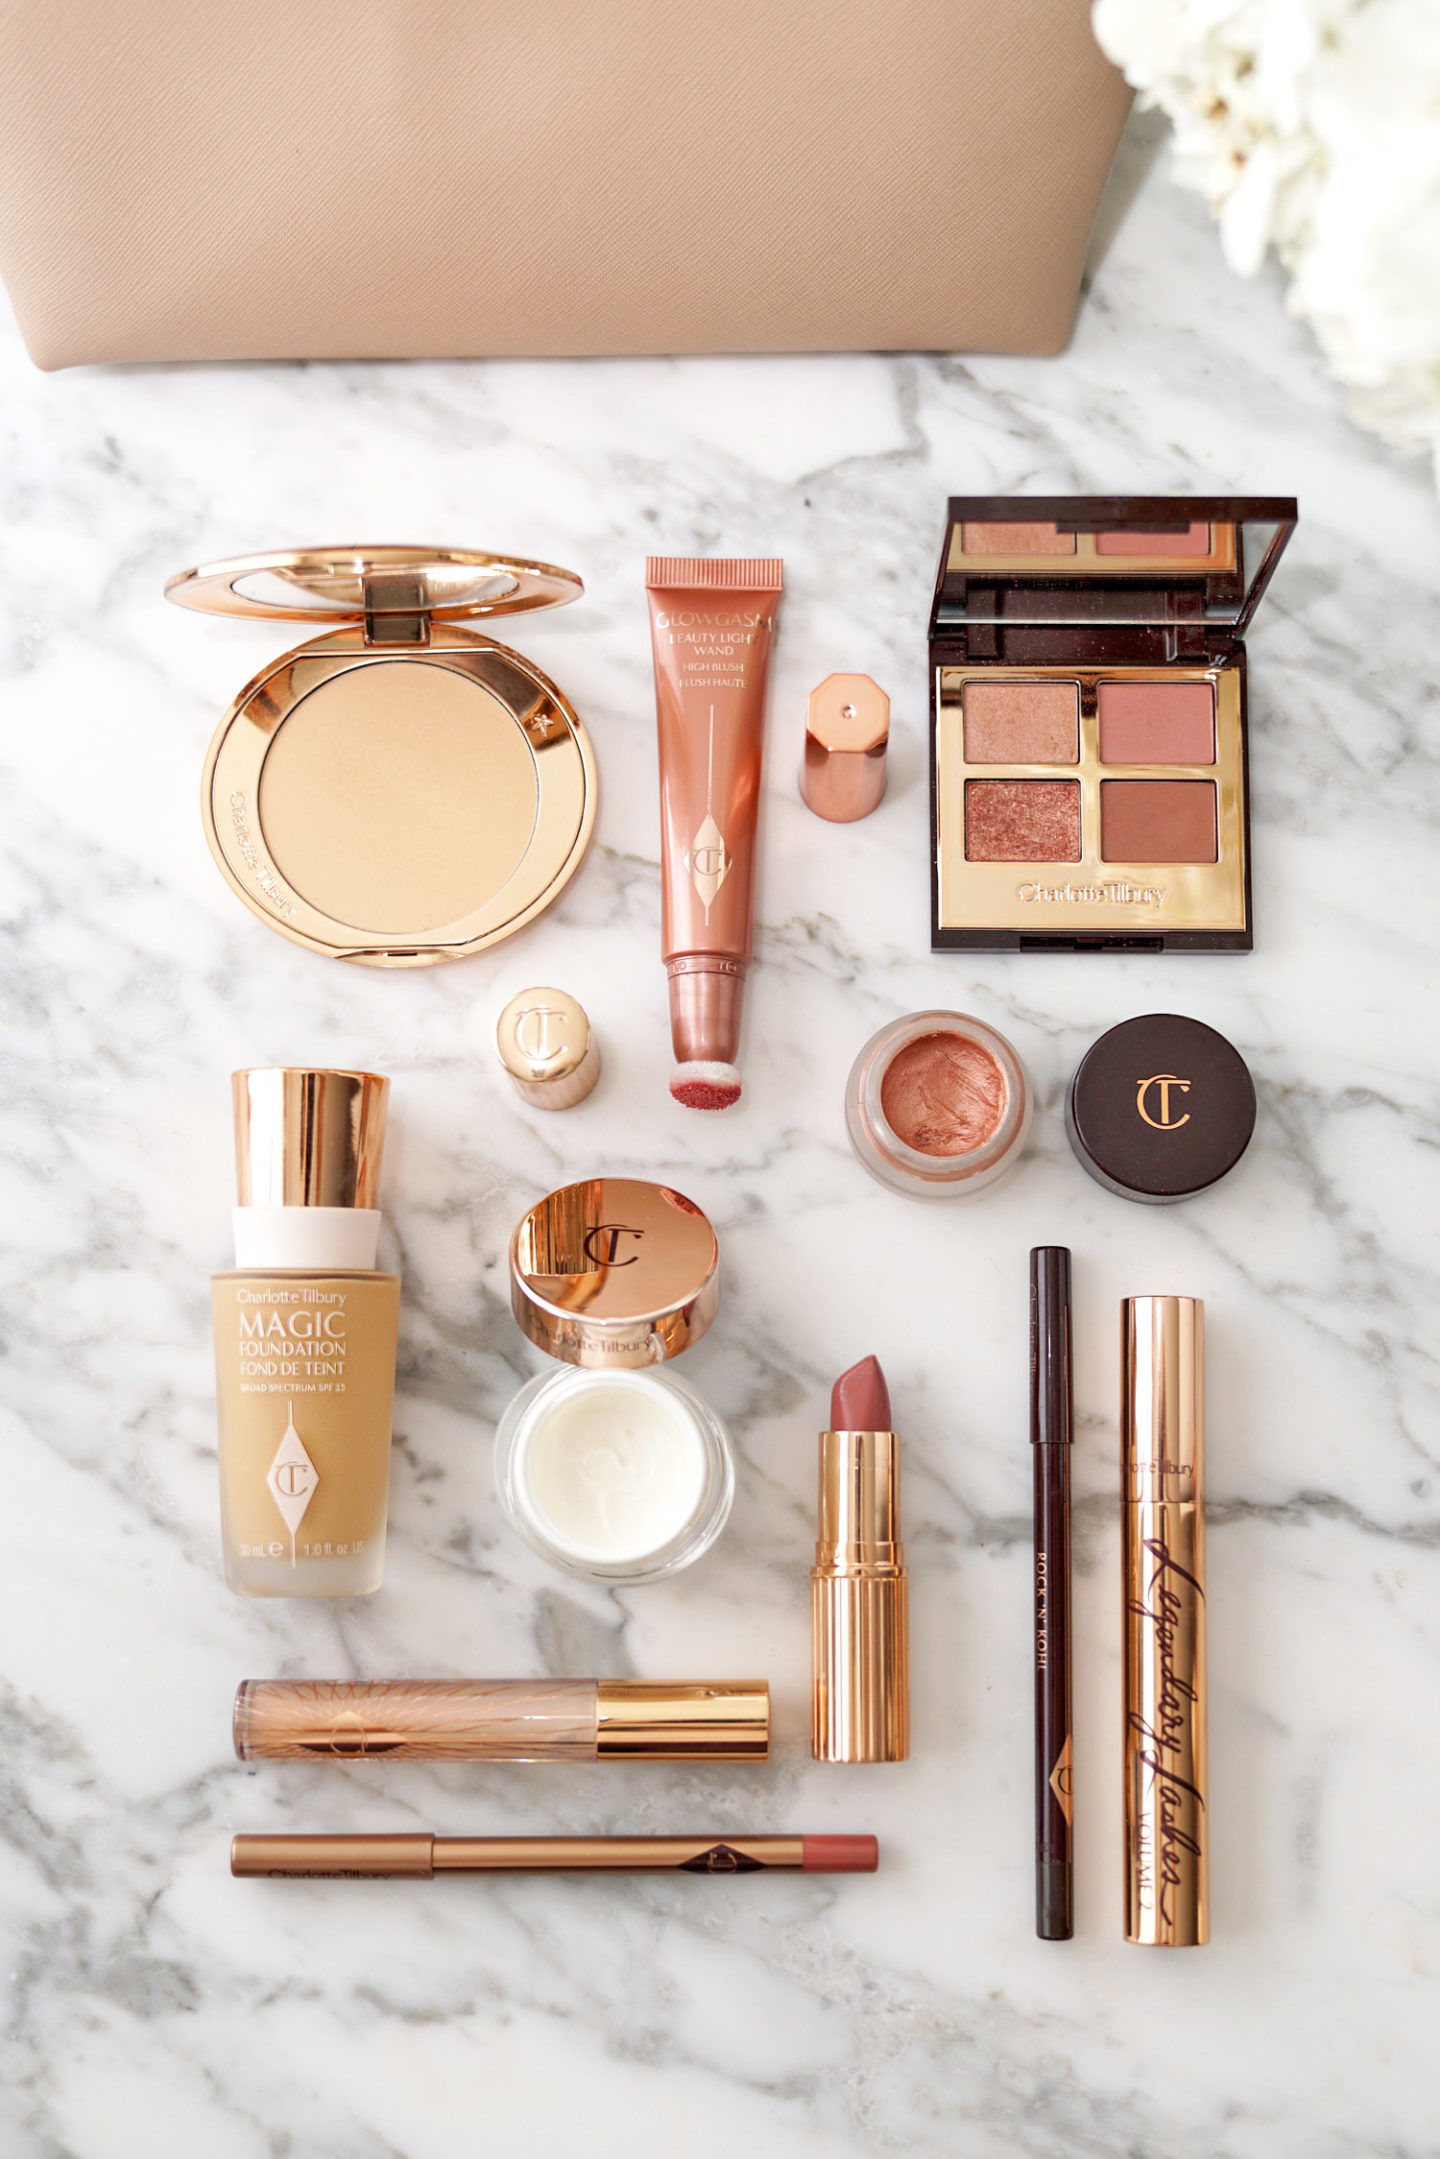 Charlotte Tilbury Pinkgasm Maquillage Idées Look